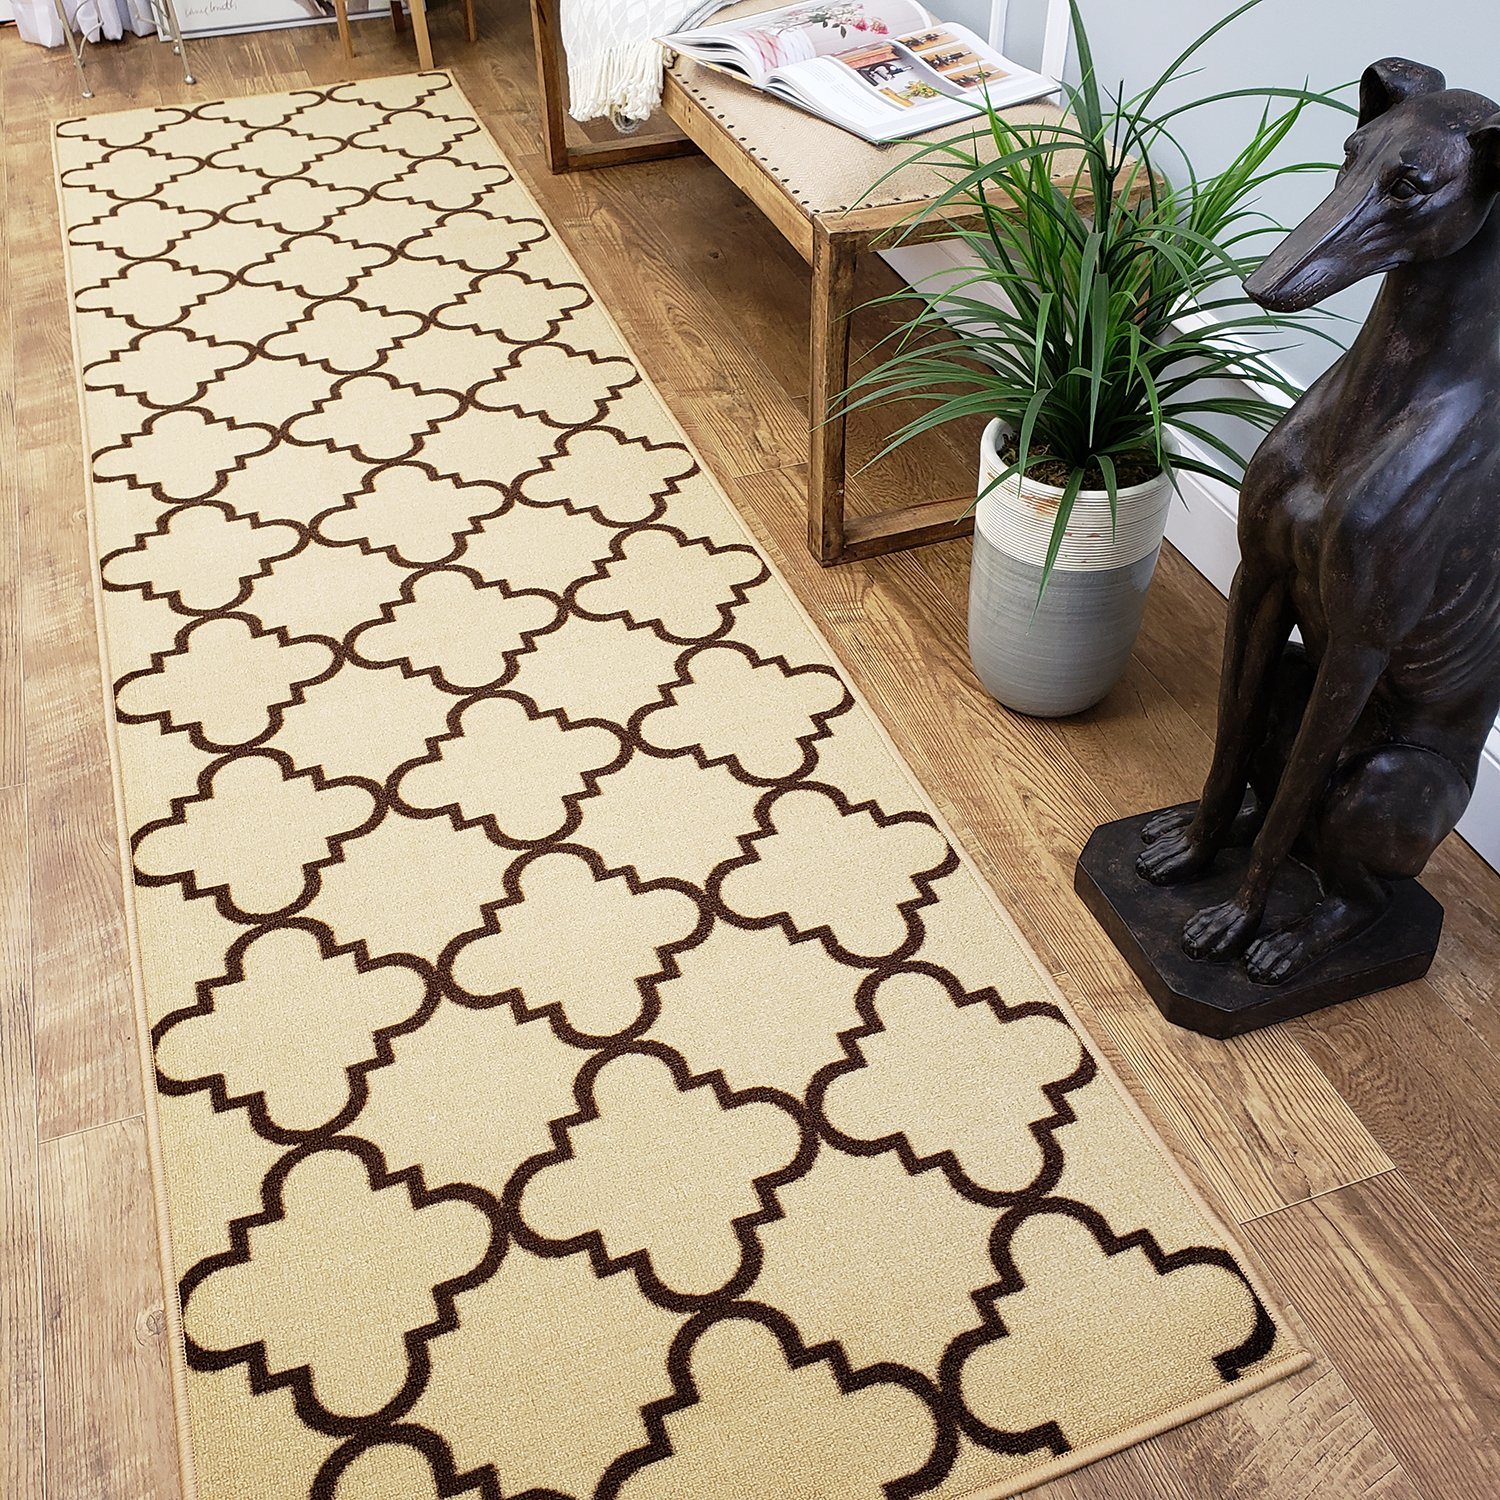 CUSTOM CUT 22-inch Wide by 10-feet Long Runner, Beige Moroccan Trellis Non Slip, Non-Skid, Rubber Backed Stair, Hallway, Kitchen, Carpet Runner Rug - Choose your Width by Length